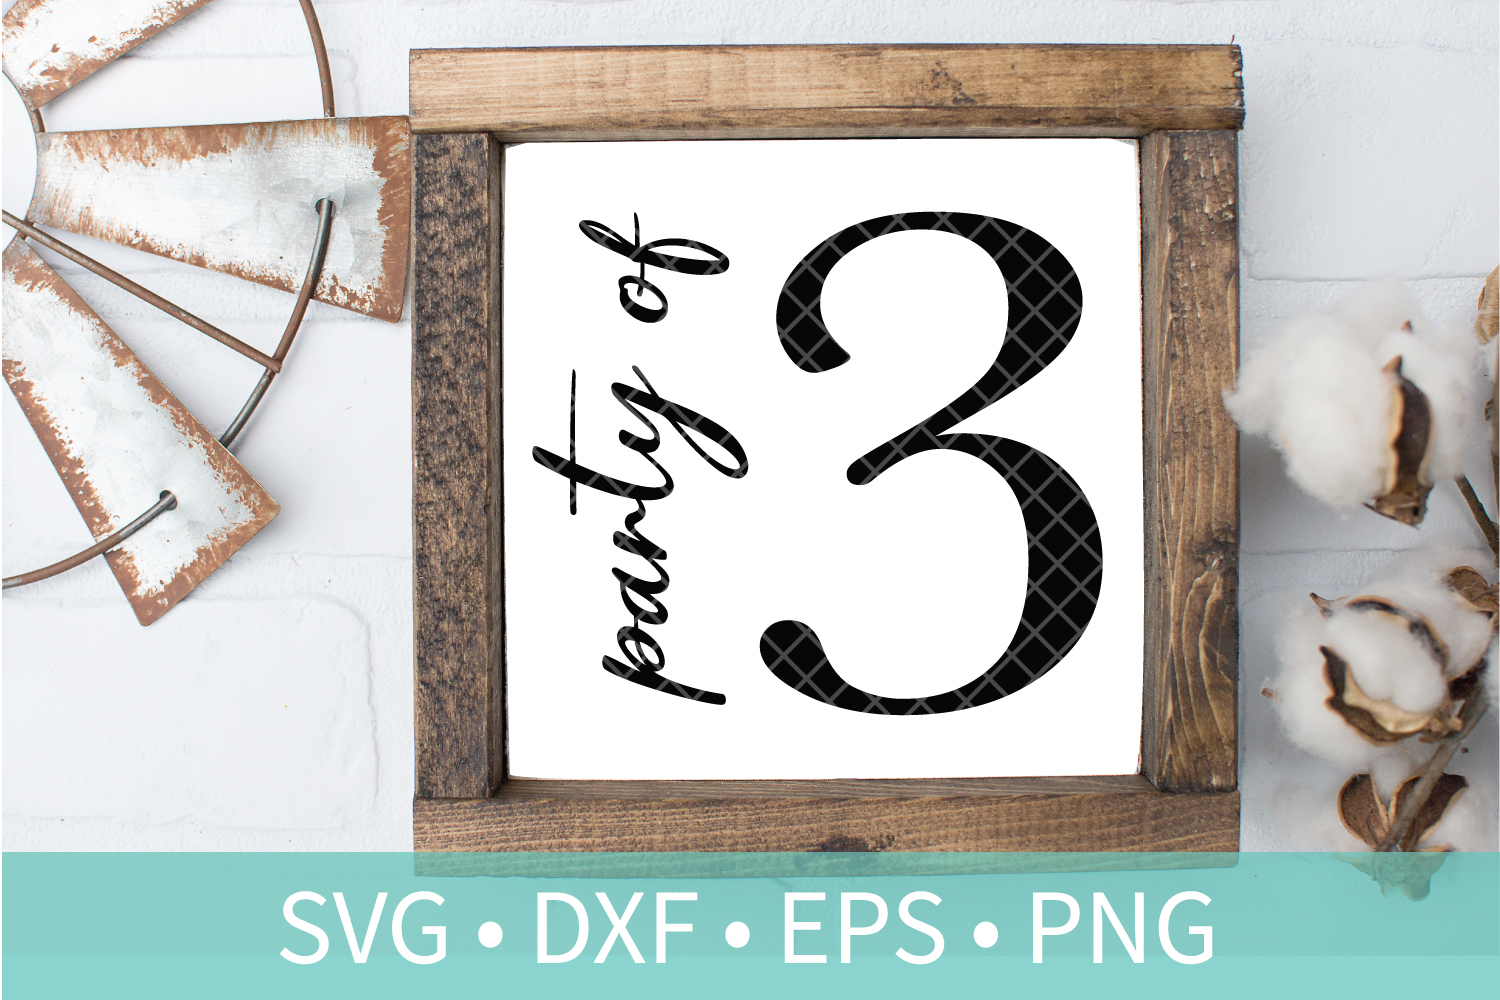 Party of 3 Family Sign SVG DXF EPS PNG Clipart Cut File example image 1